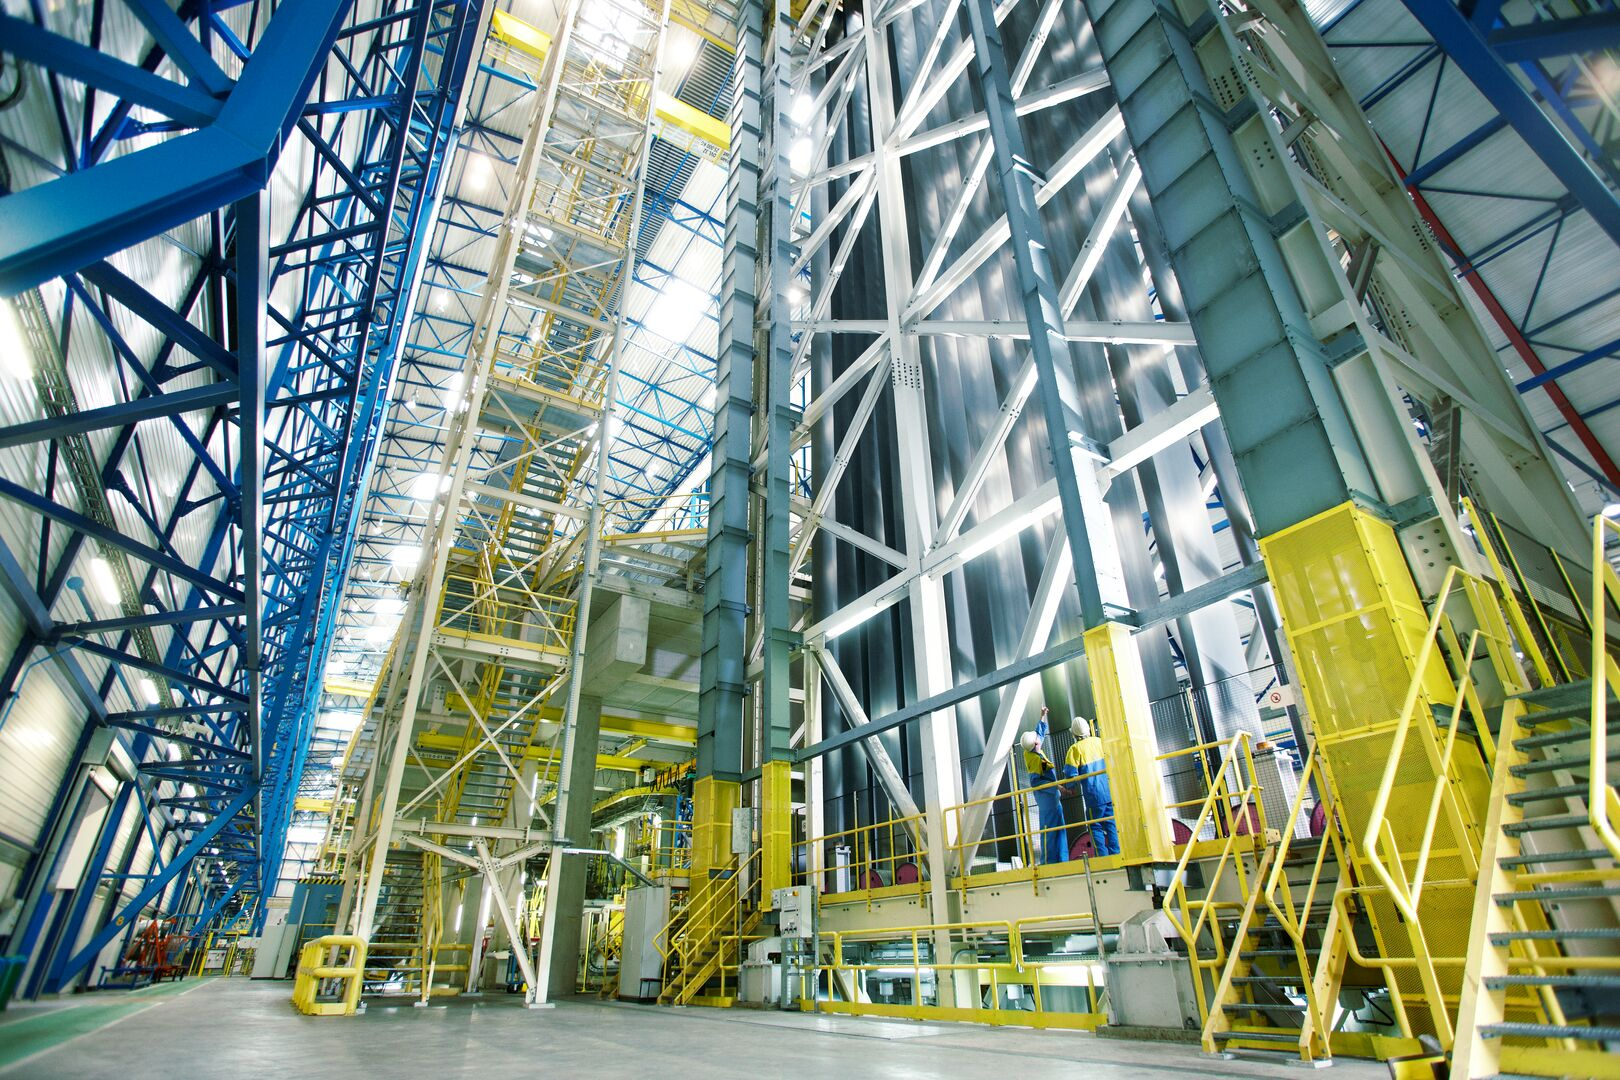 Tata Steel hot dip galvanizing line in IJmuiden